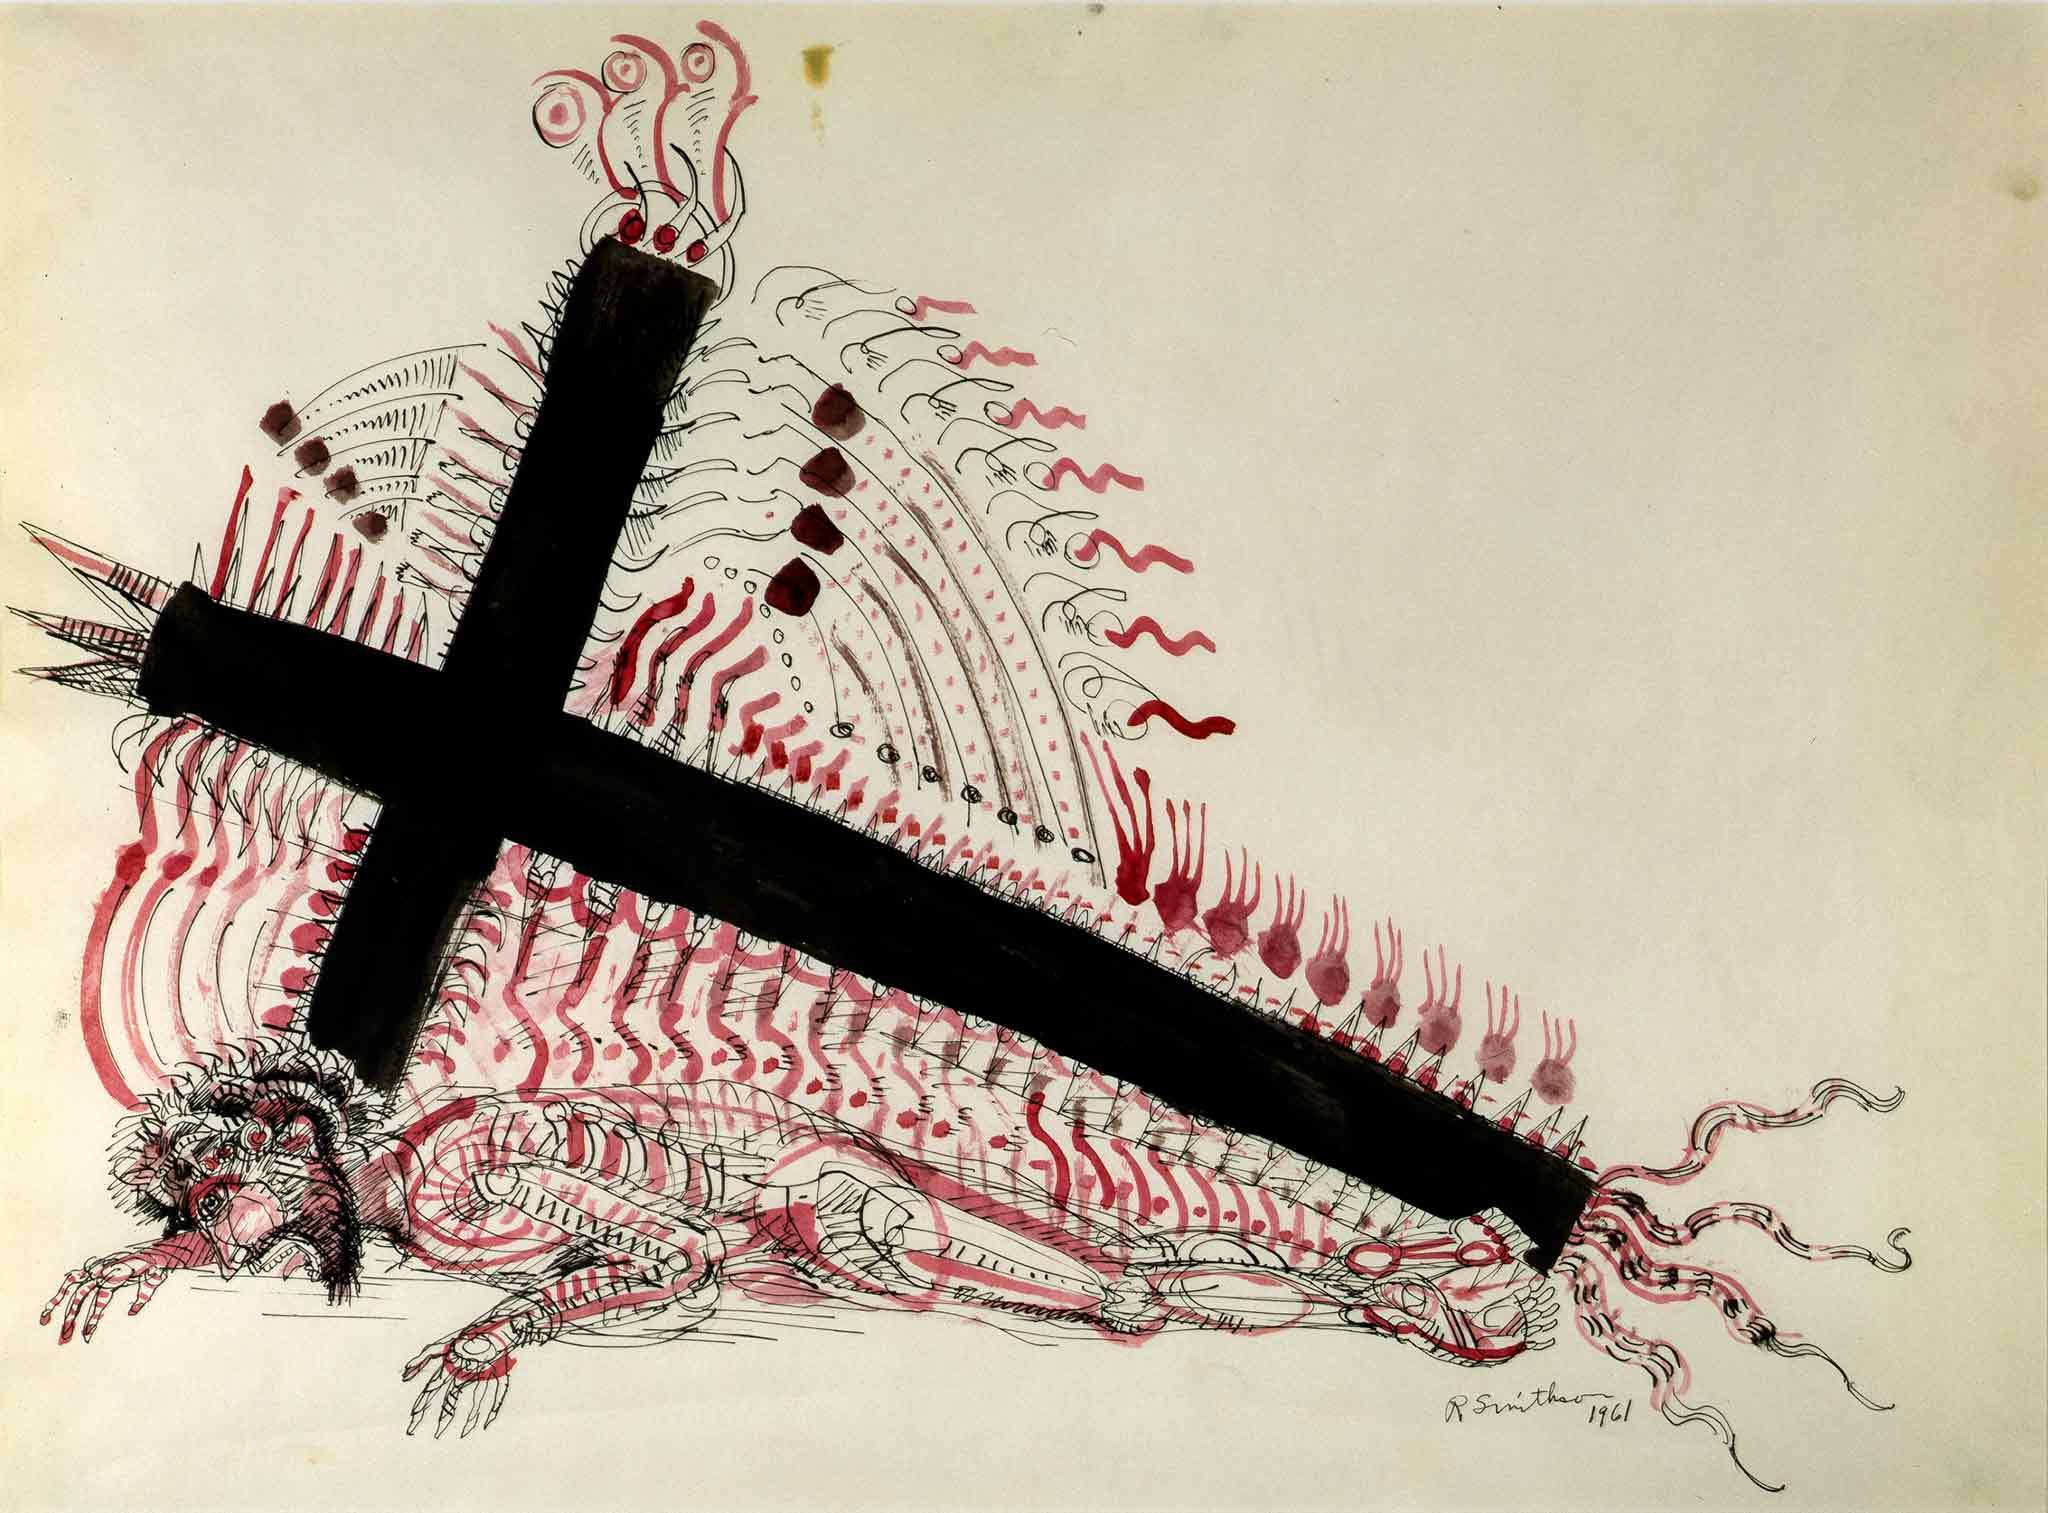 a drawing of a large black cross with geometric patterns emerging from it and Christ trapped under the cross